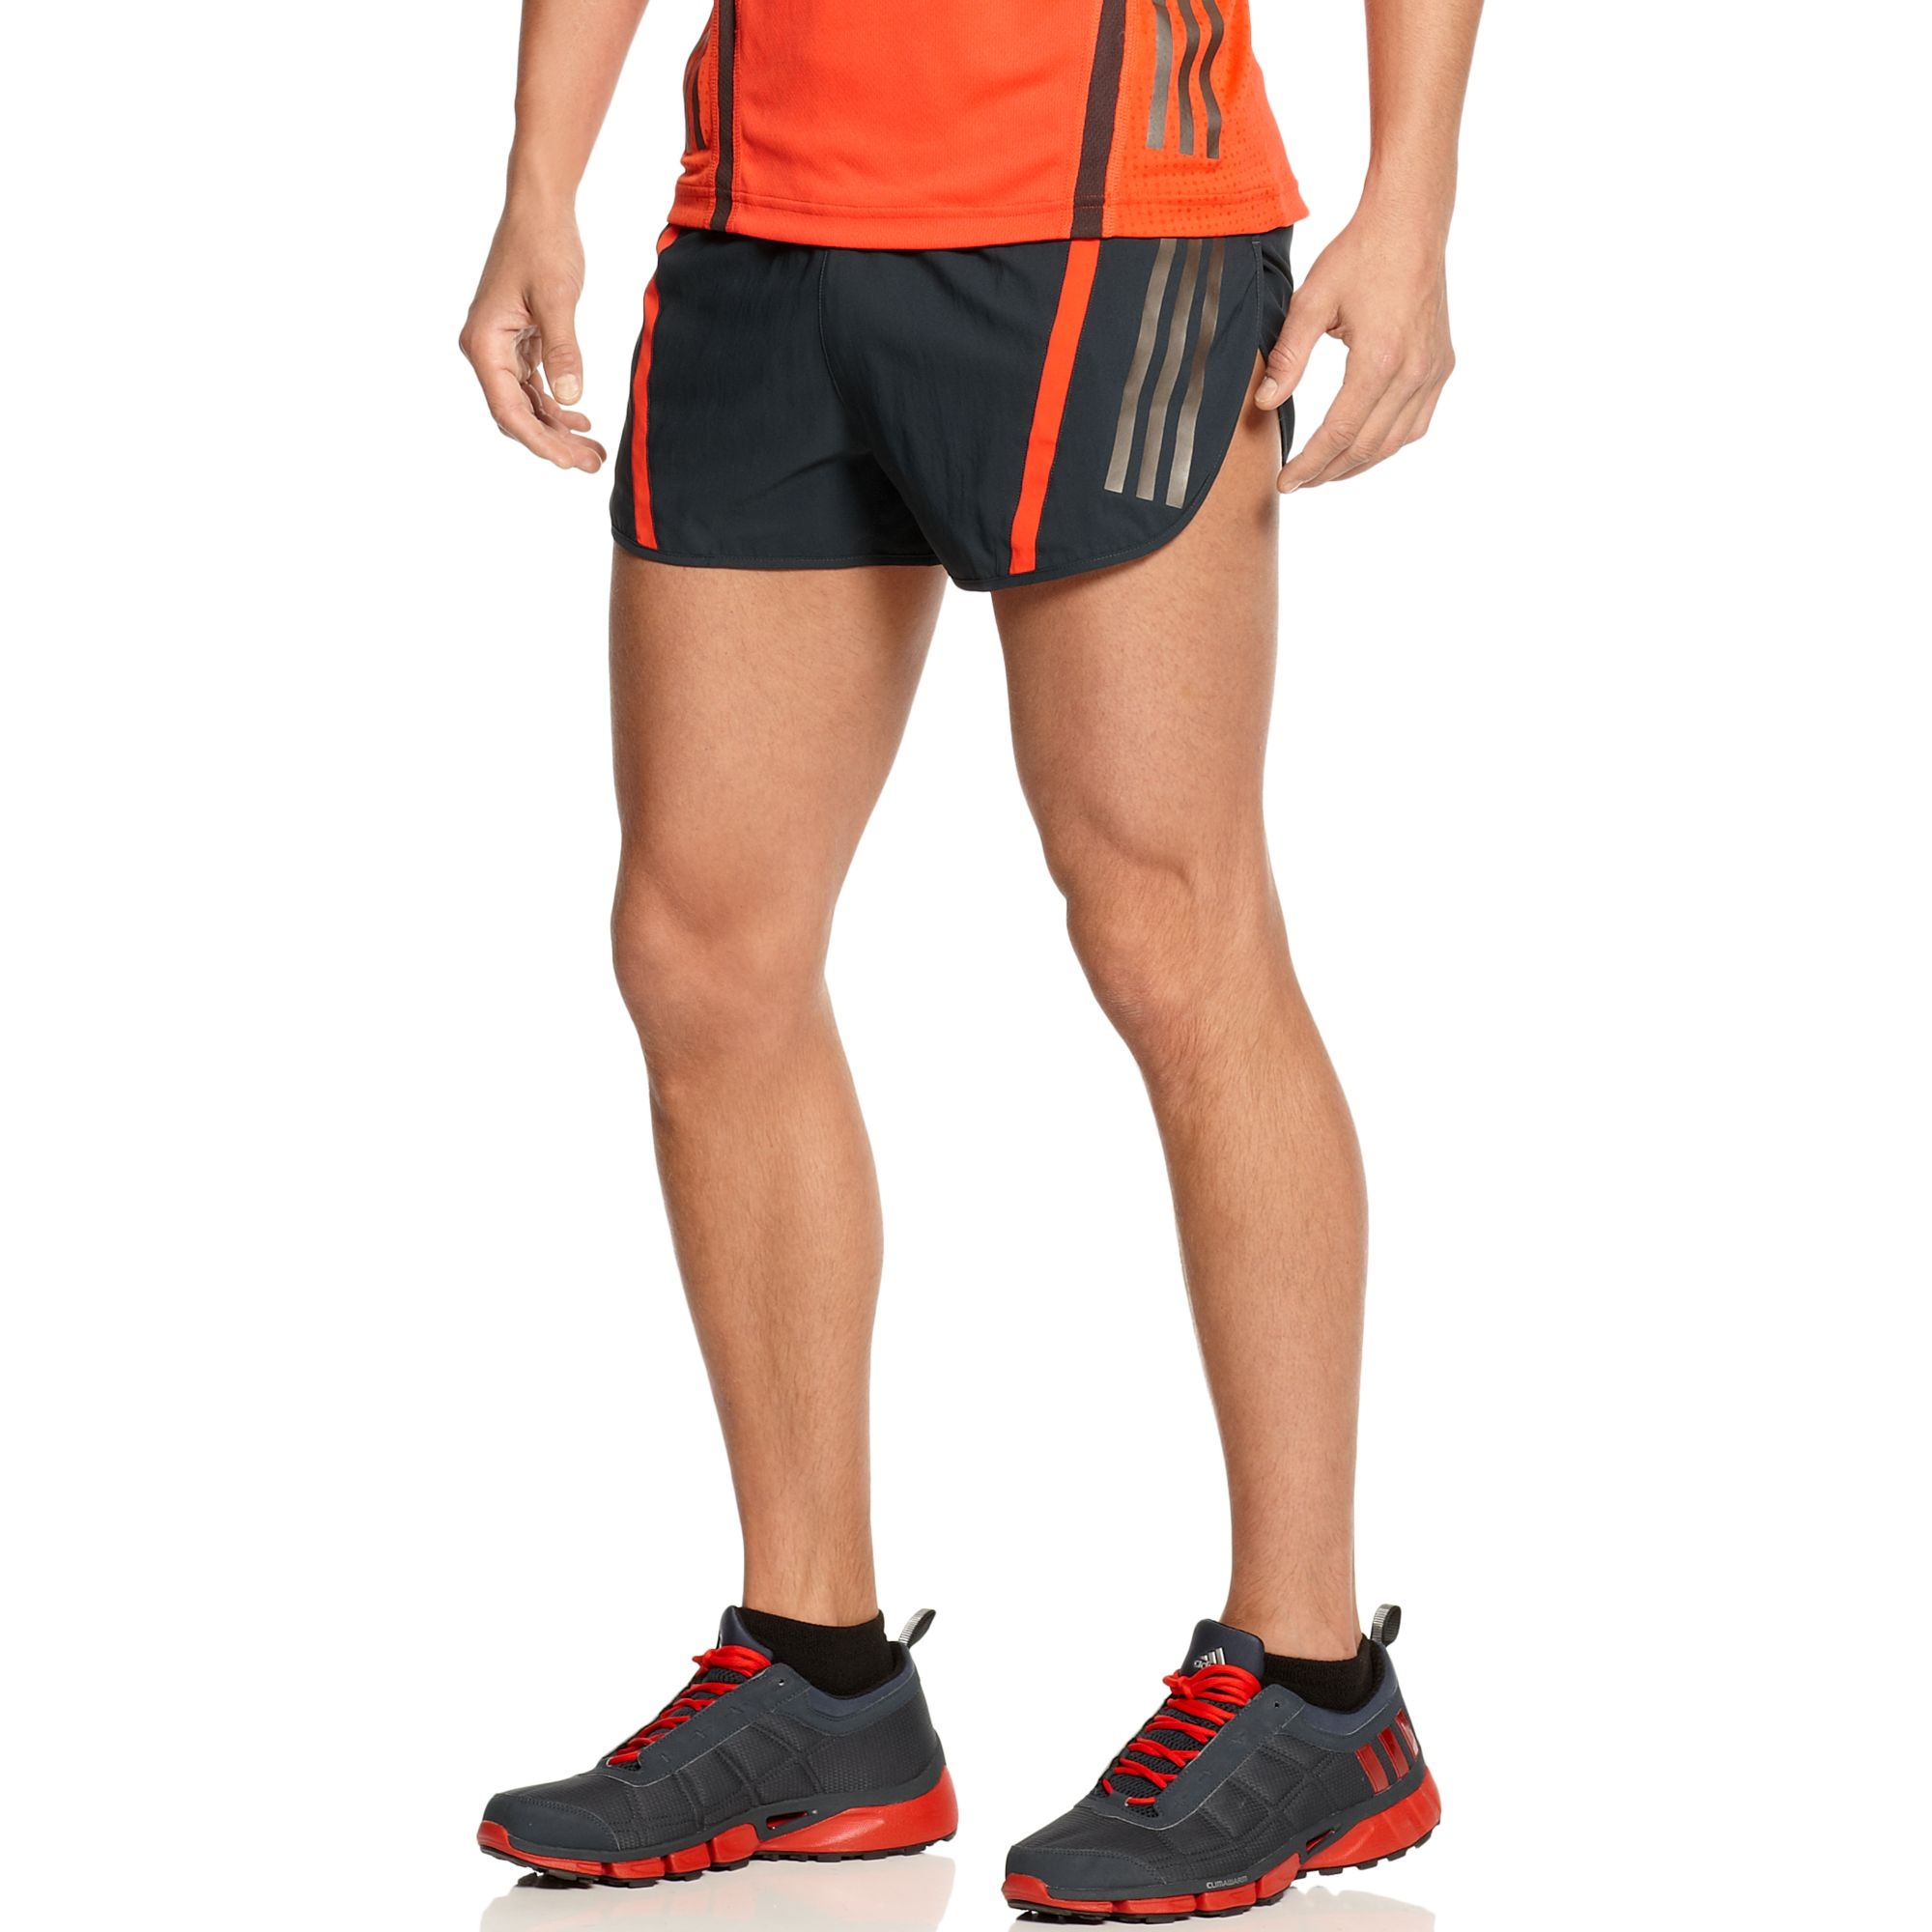 It's an activity that inspires elation for some and dread for others — pounding the pavement for a run (daily, weekly you name it). And if you've resolved to get out there, you should do it with the best men's running shorts money can buy.